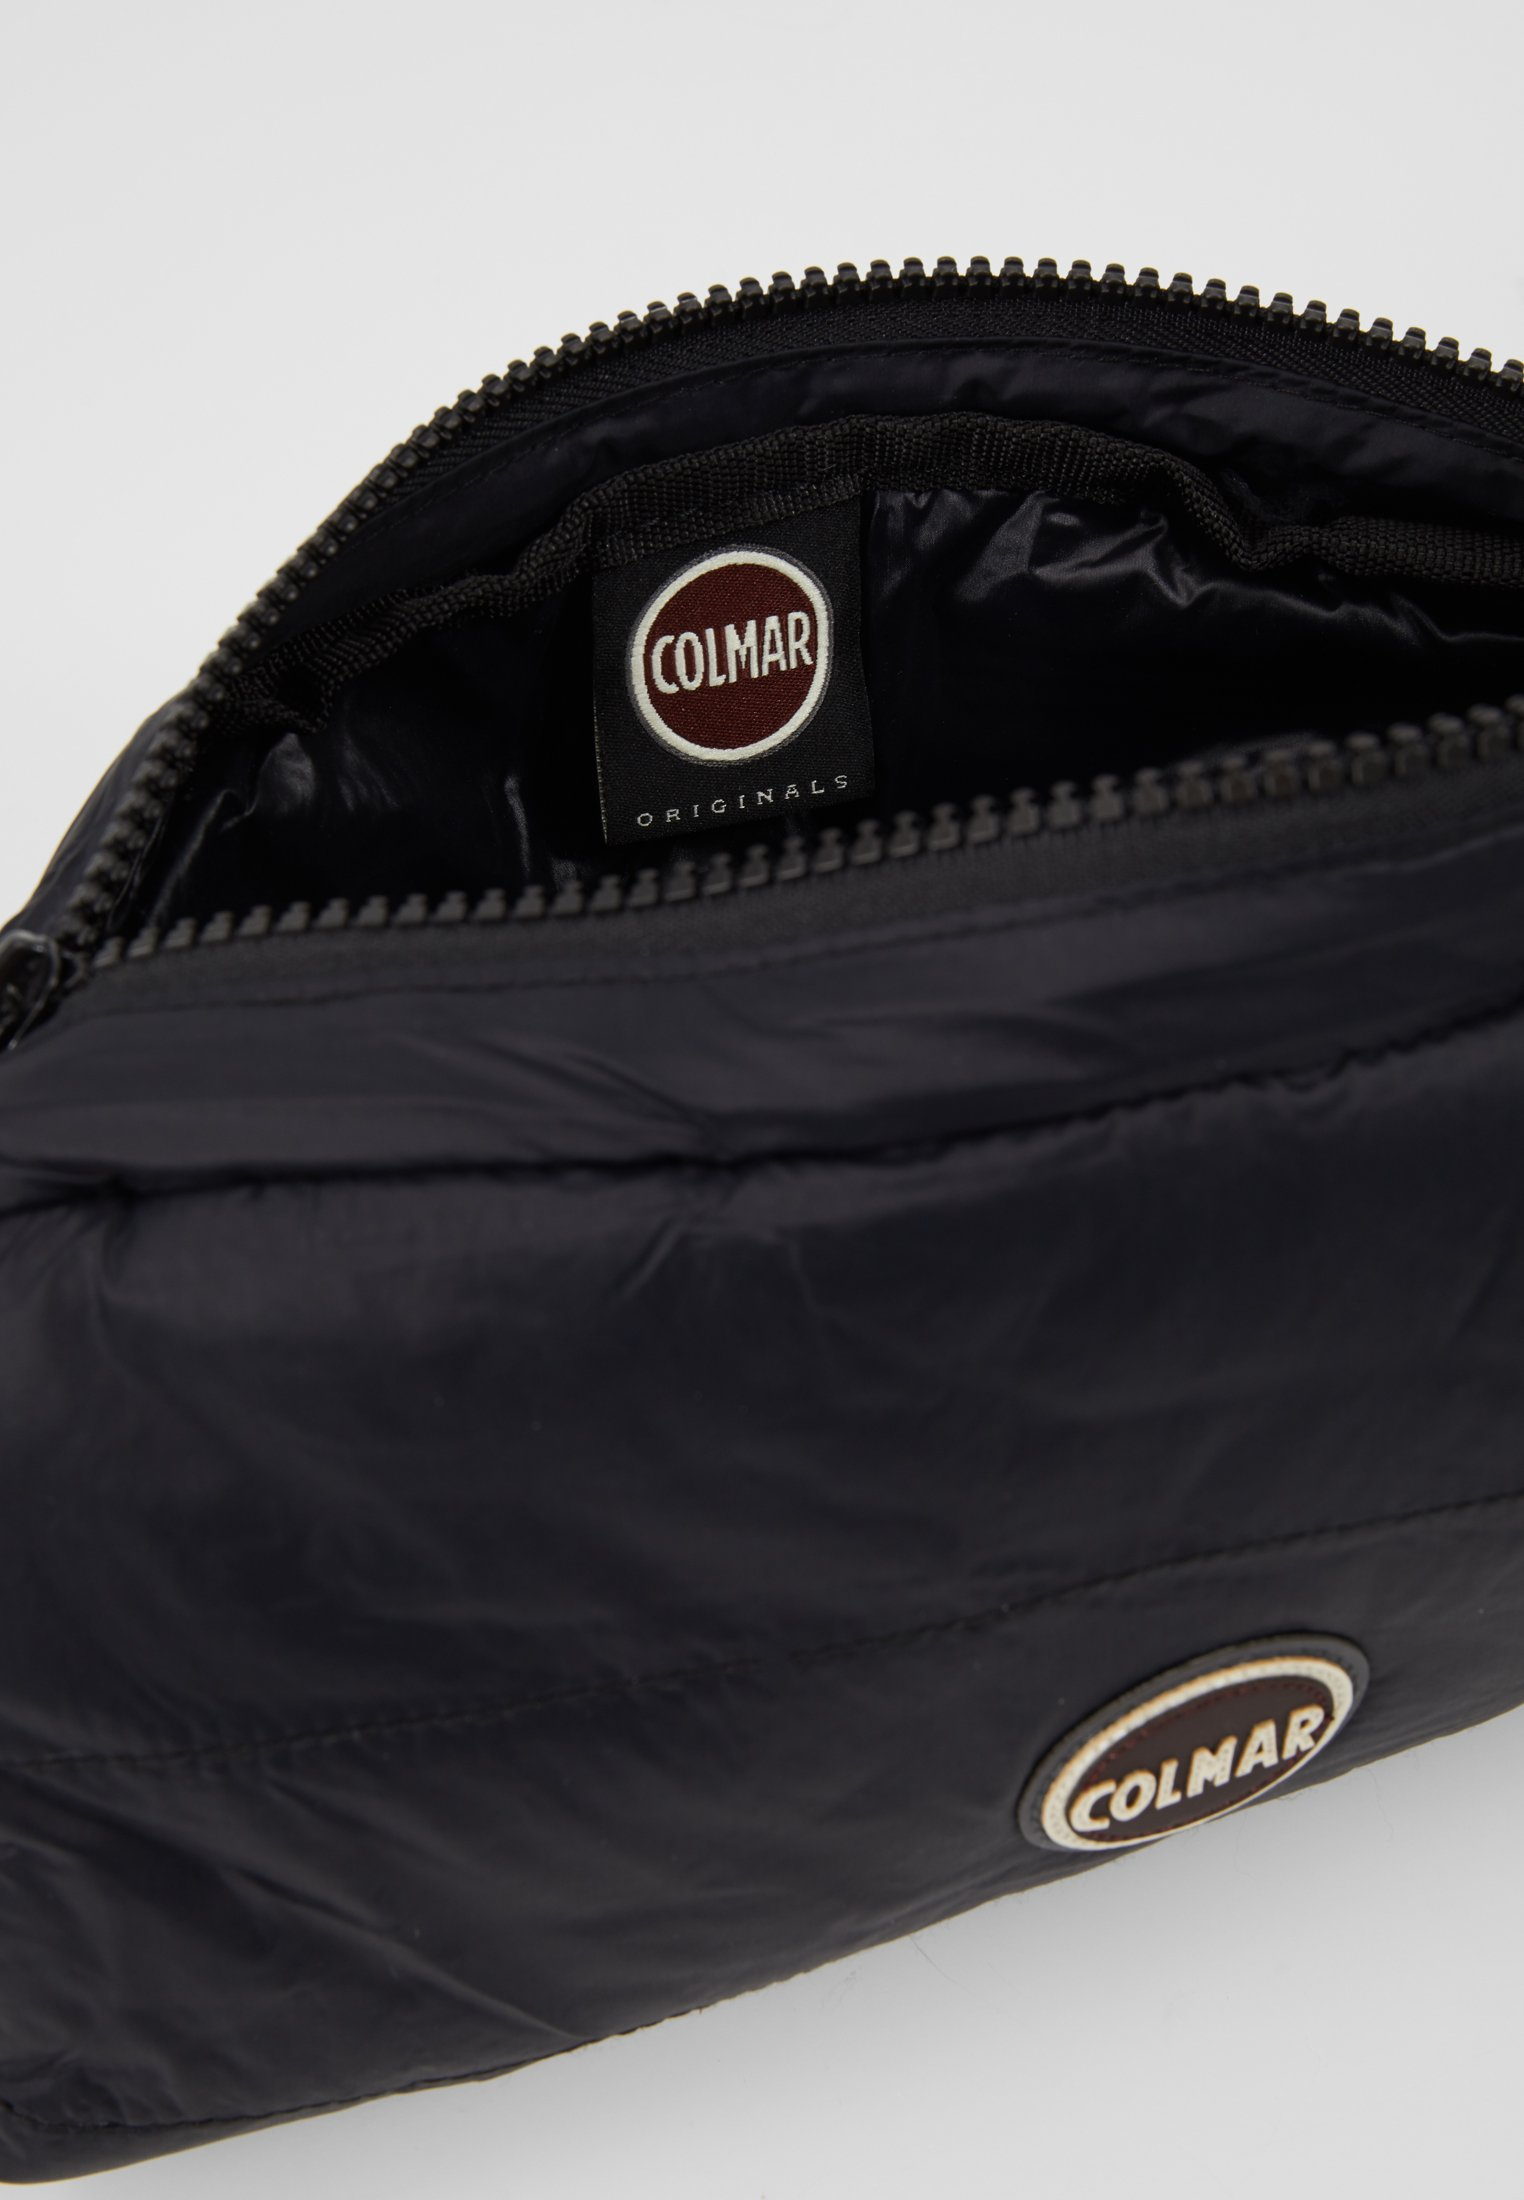 Colmar Originals Gürteltasche - black - Black Friday